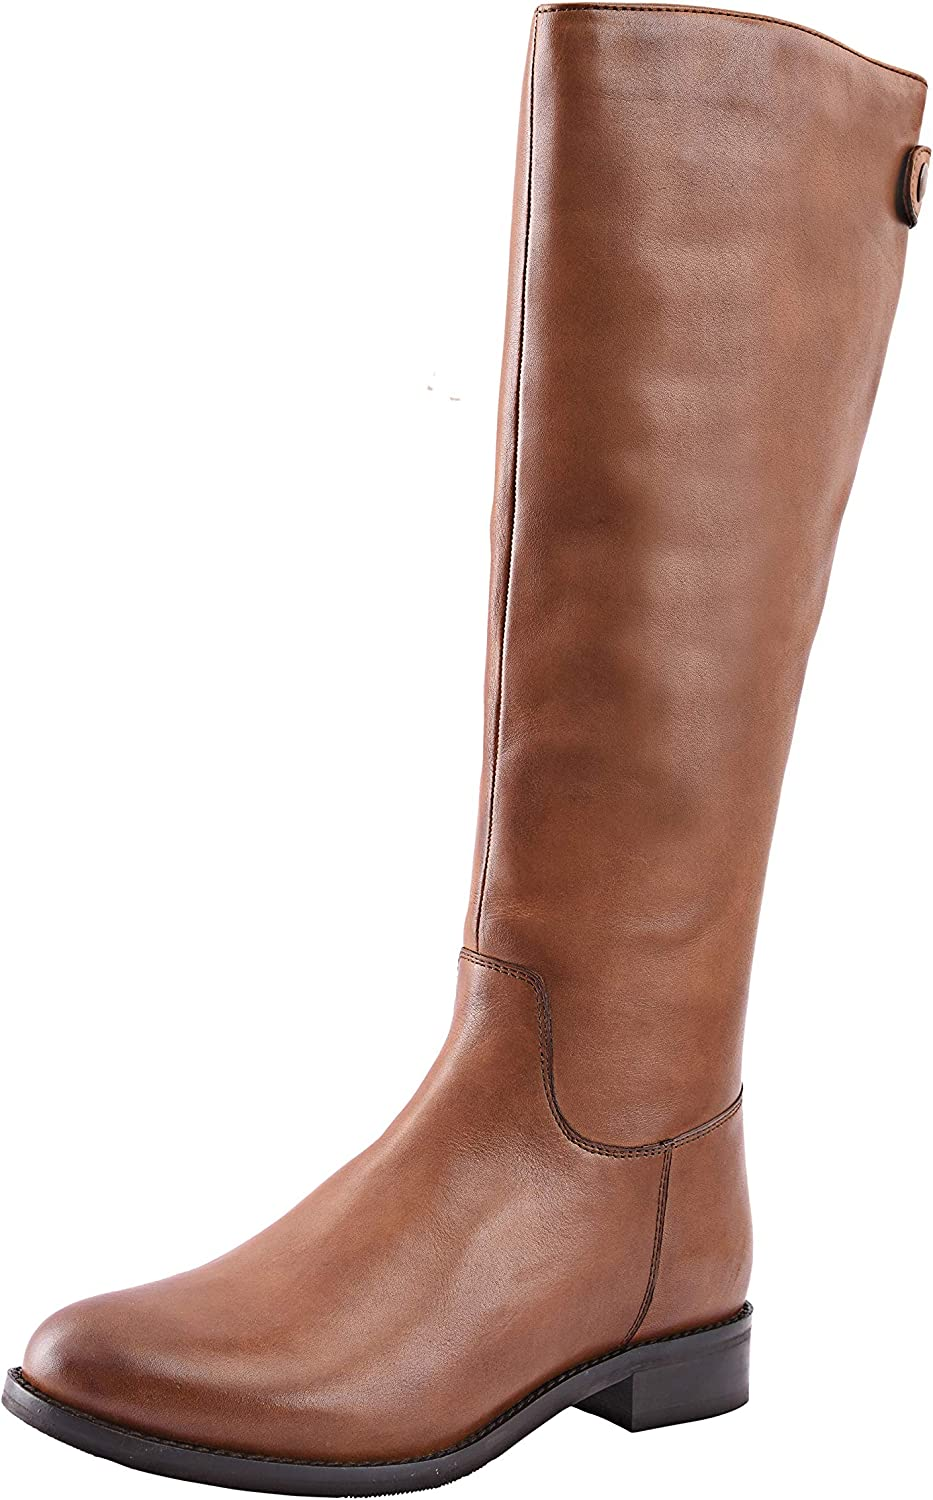 Women's Genuine Leather Knee High Boots